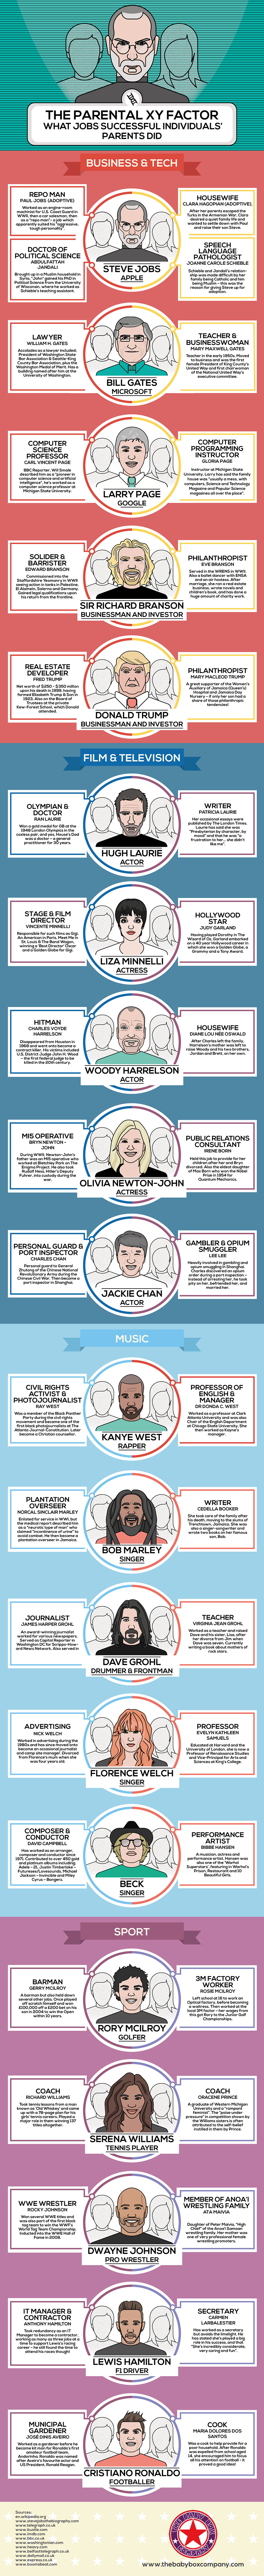 infographic the interesting jobs of successful people infographic the interesting jobs of successful people celebrities parents